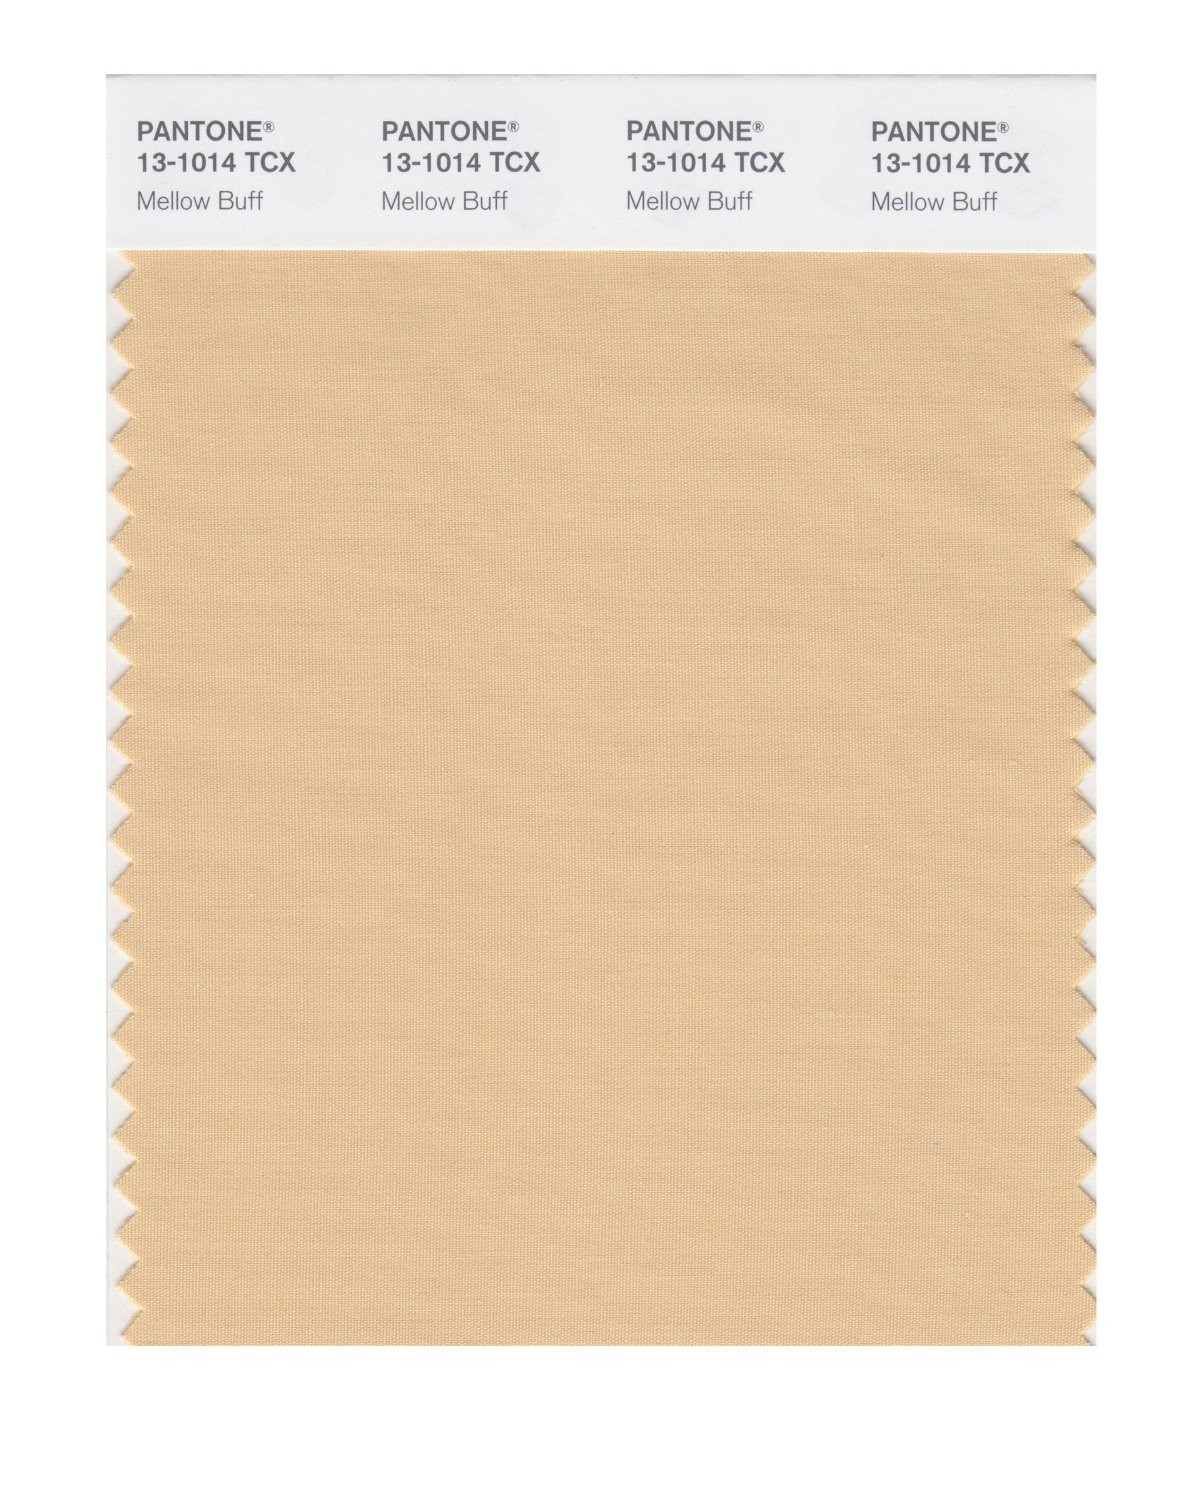 Pantone 13-1014 TCX Swatch Card Mellow Buff